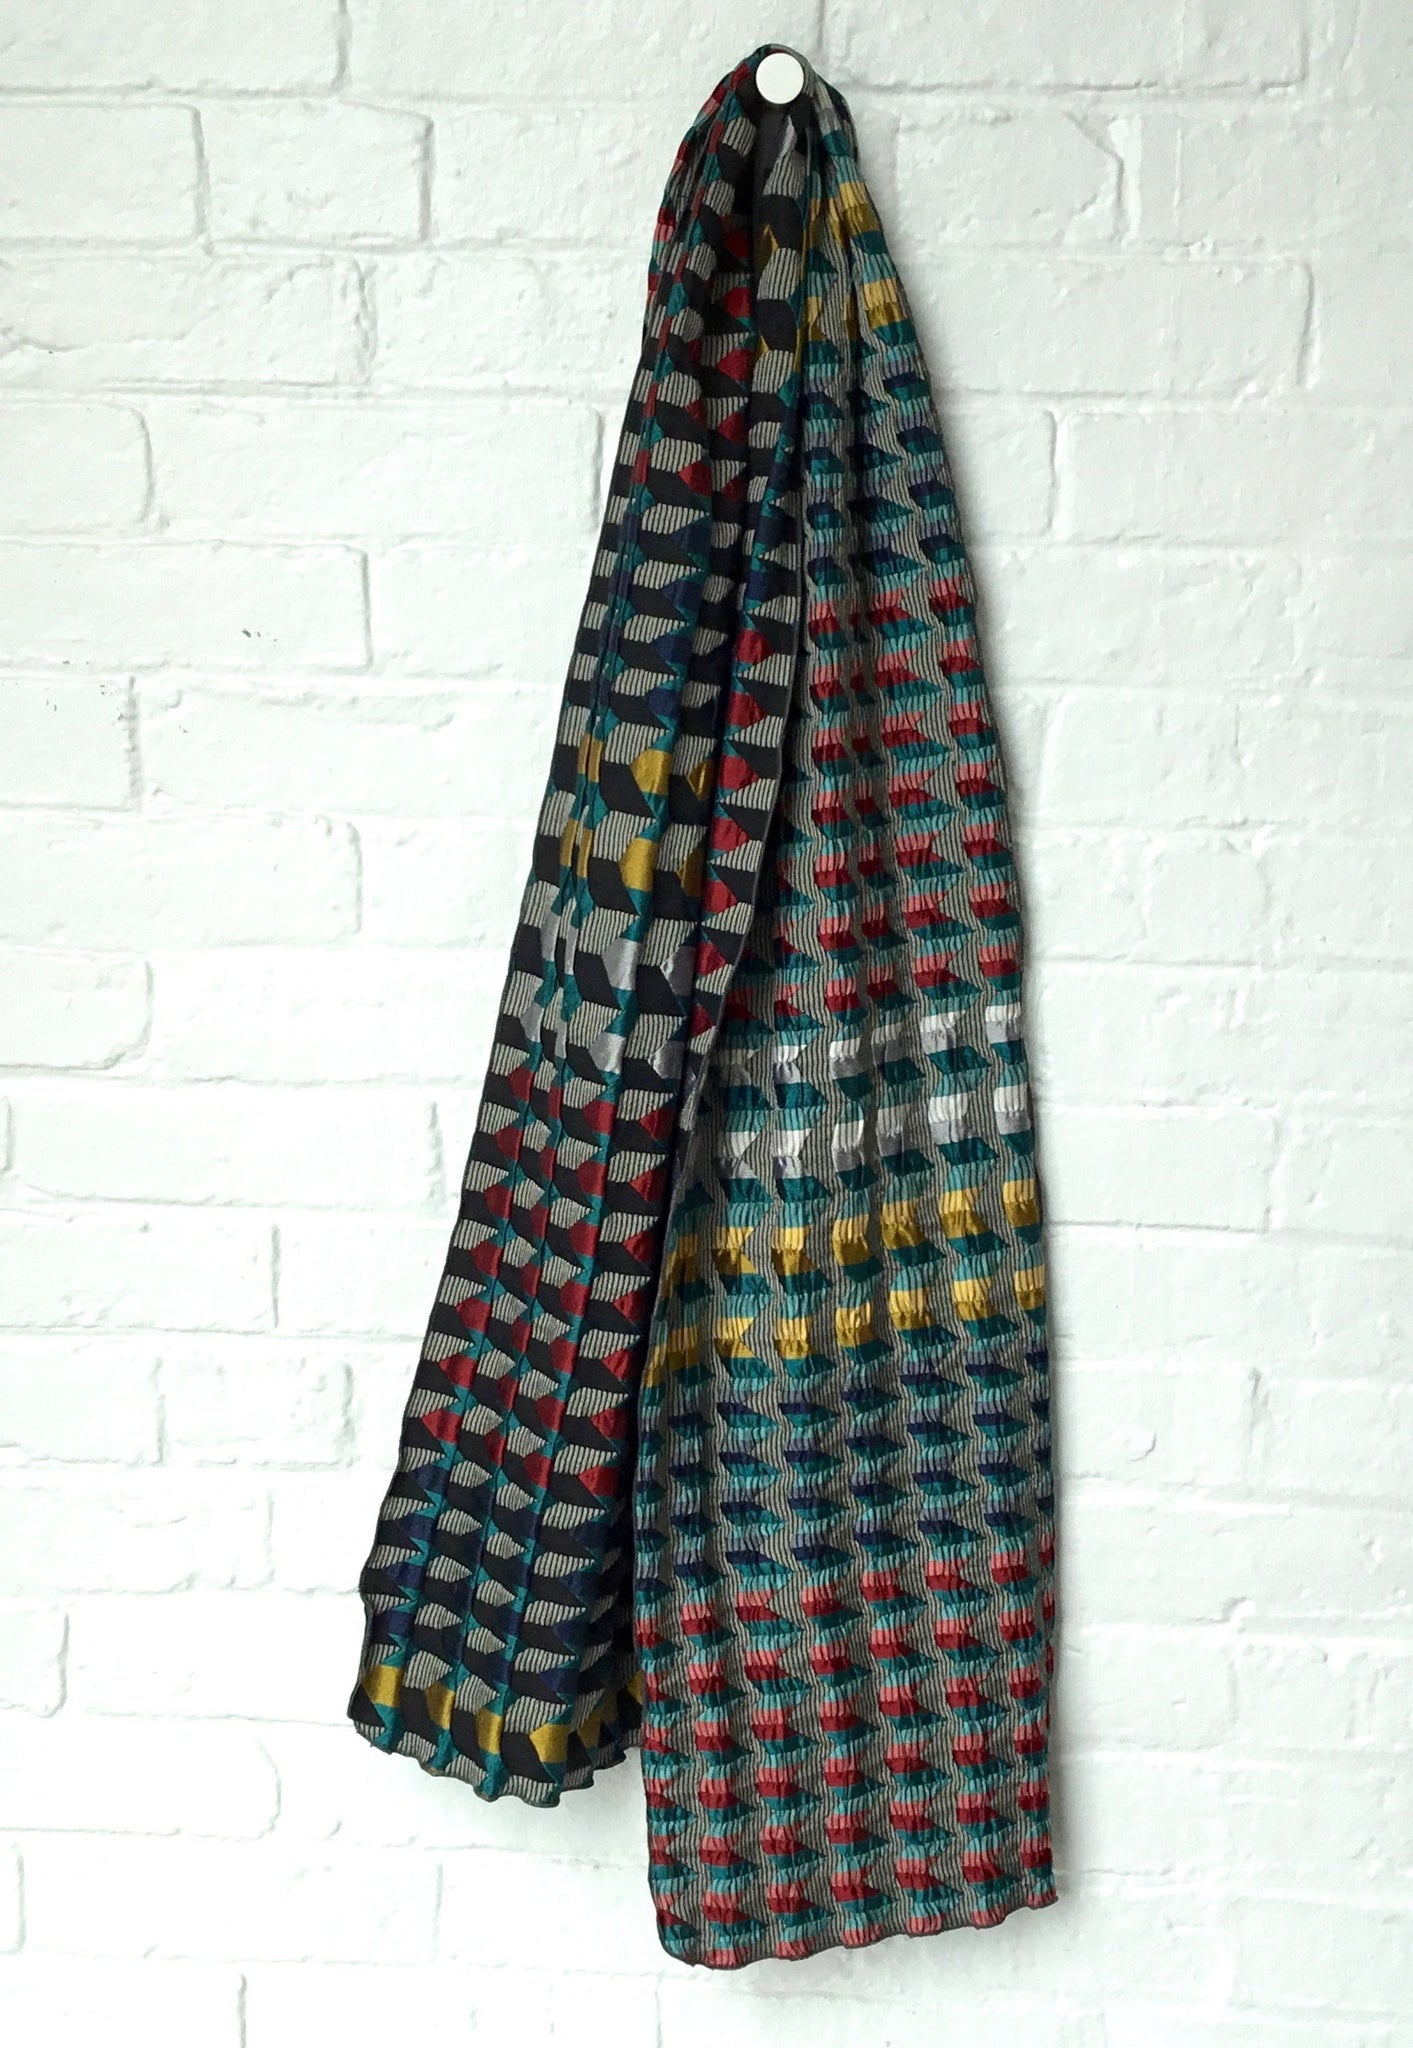 Margo Selby Grenville Scarf